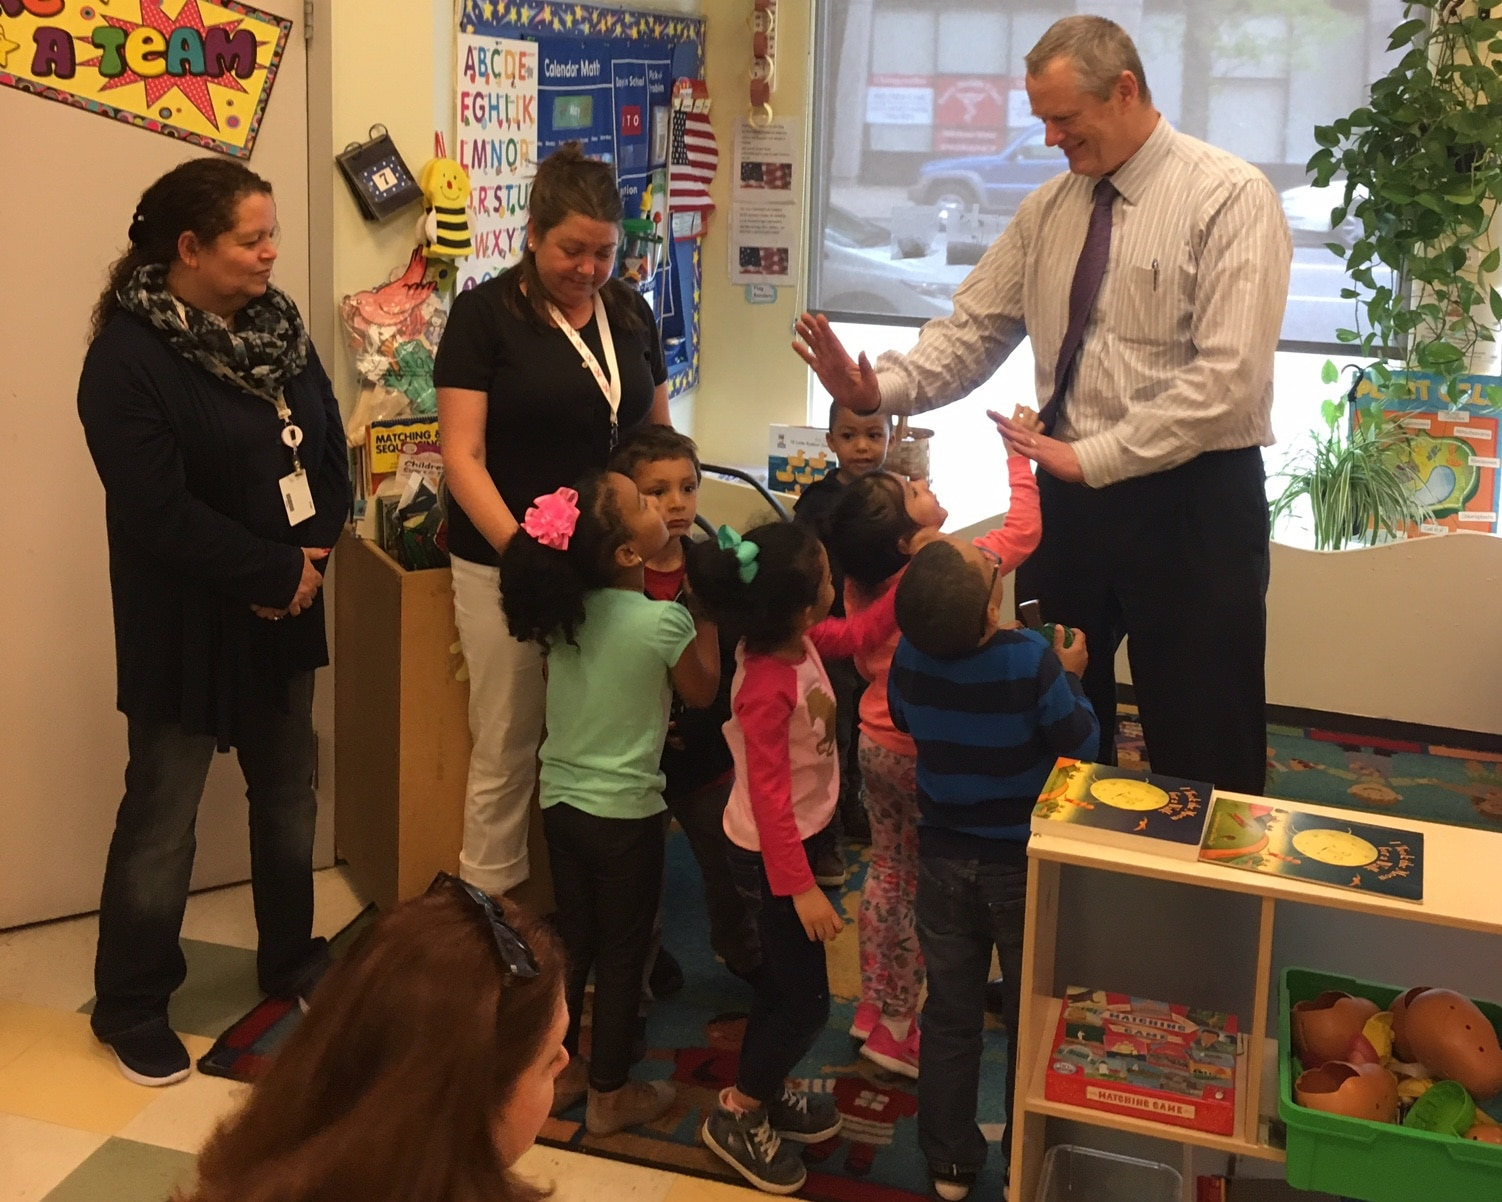 Photo of Governor Baker greeting children in a preschool classroom.